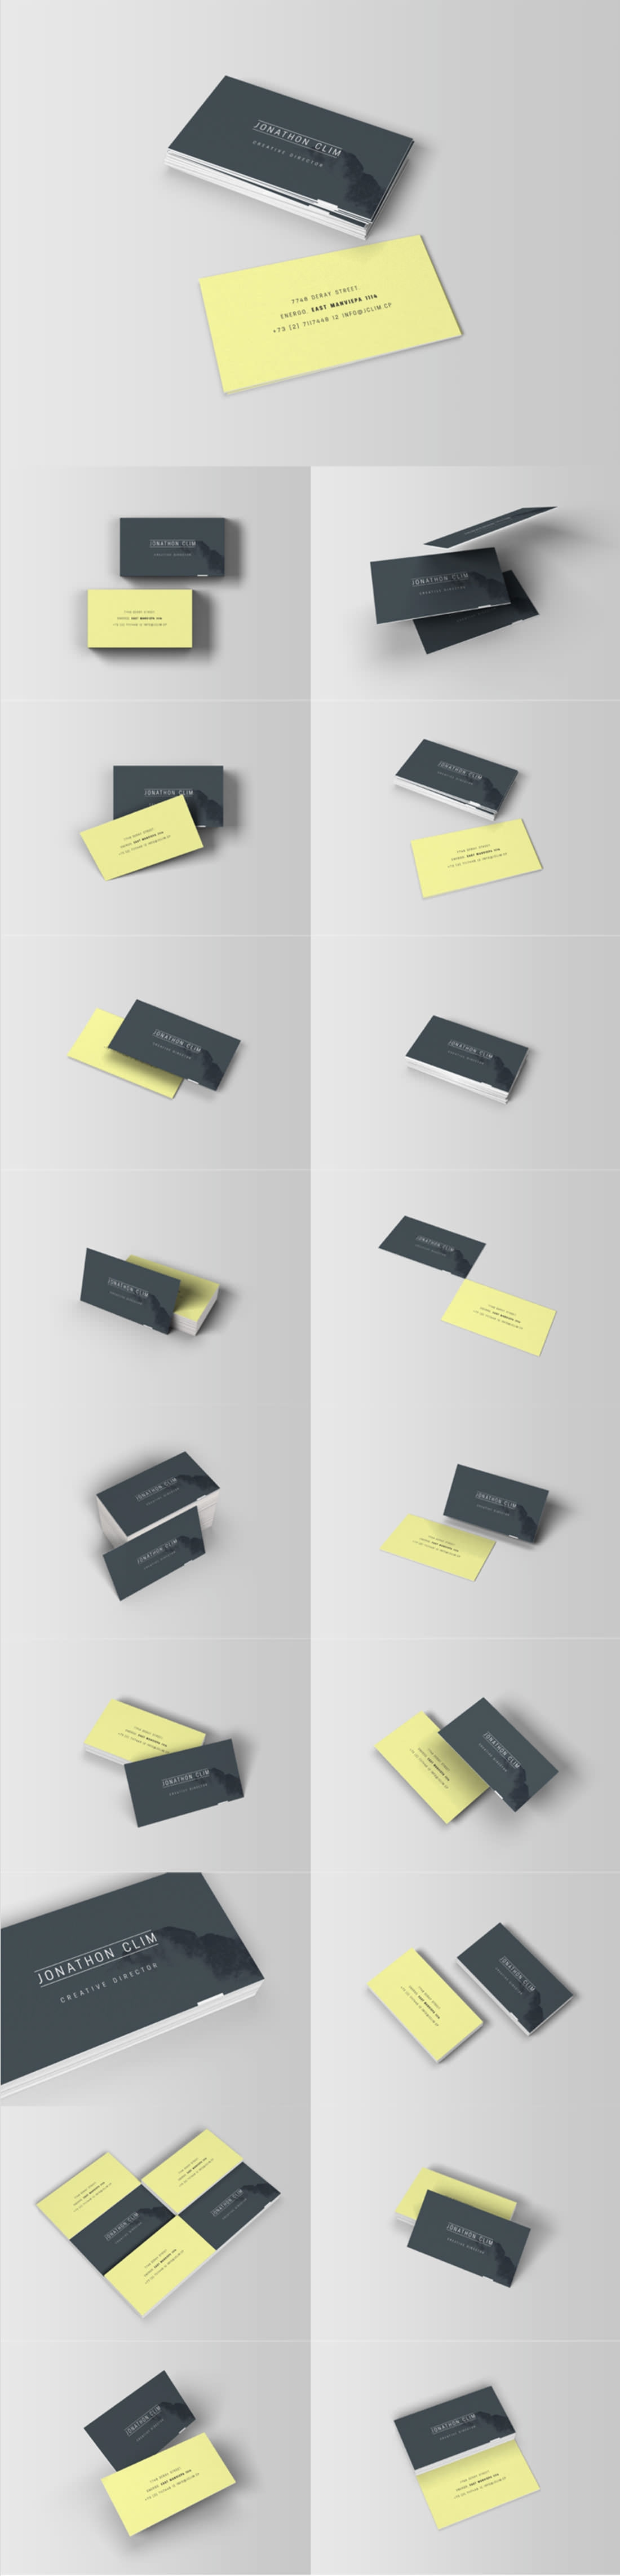 Ultimate 8 Business Card Mockups in Different Angles